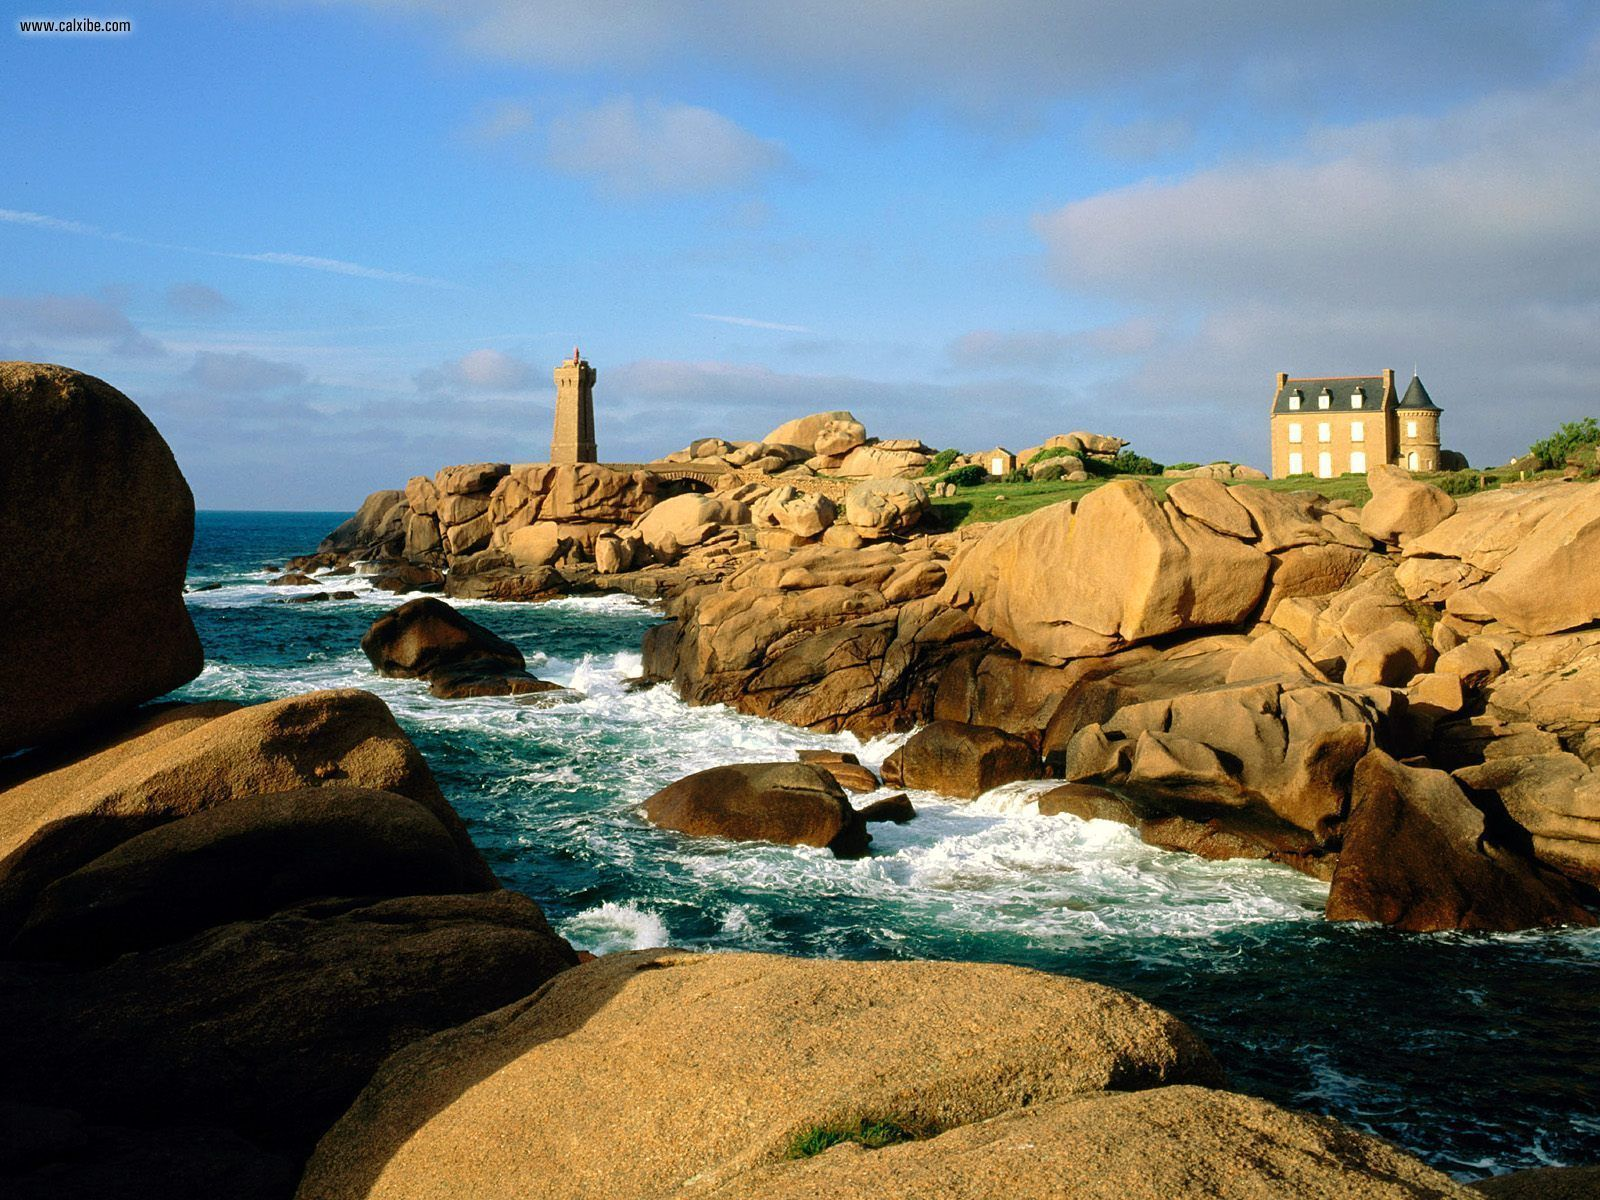 Bretagne France Wallpapers - Top Free Bretagne France Backgrounds -  WallpaperAccess